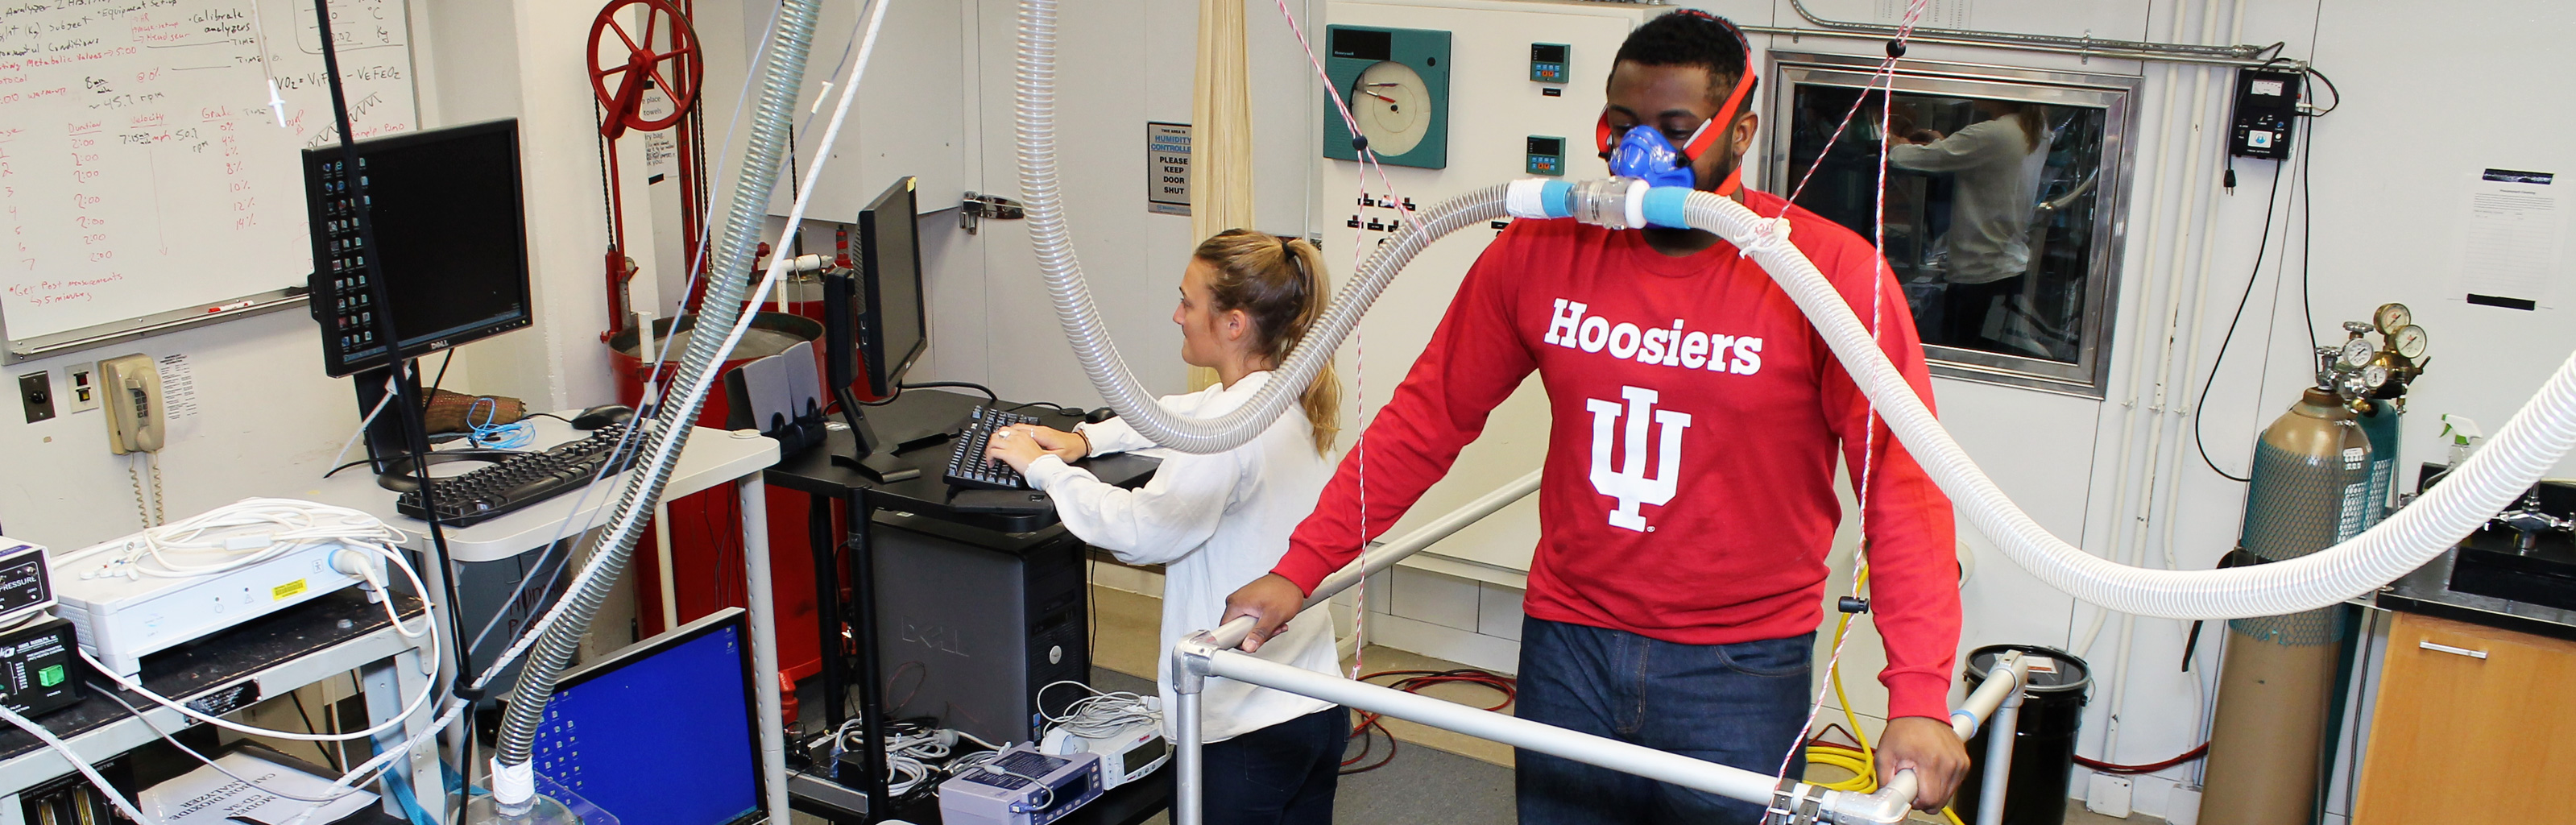 Health students measure physical fitness in a lab setting.